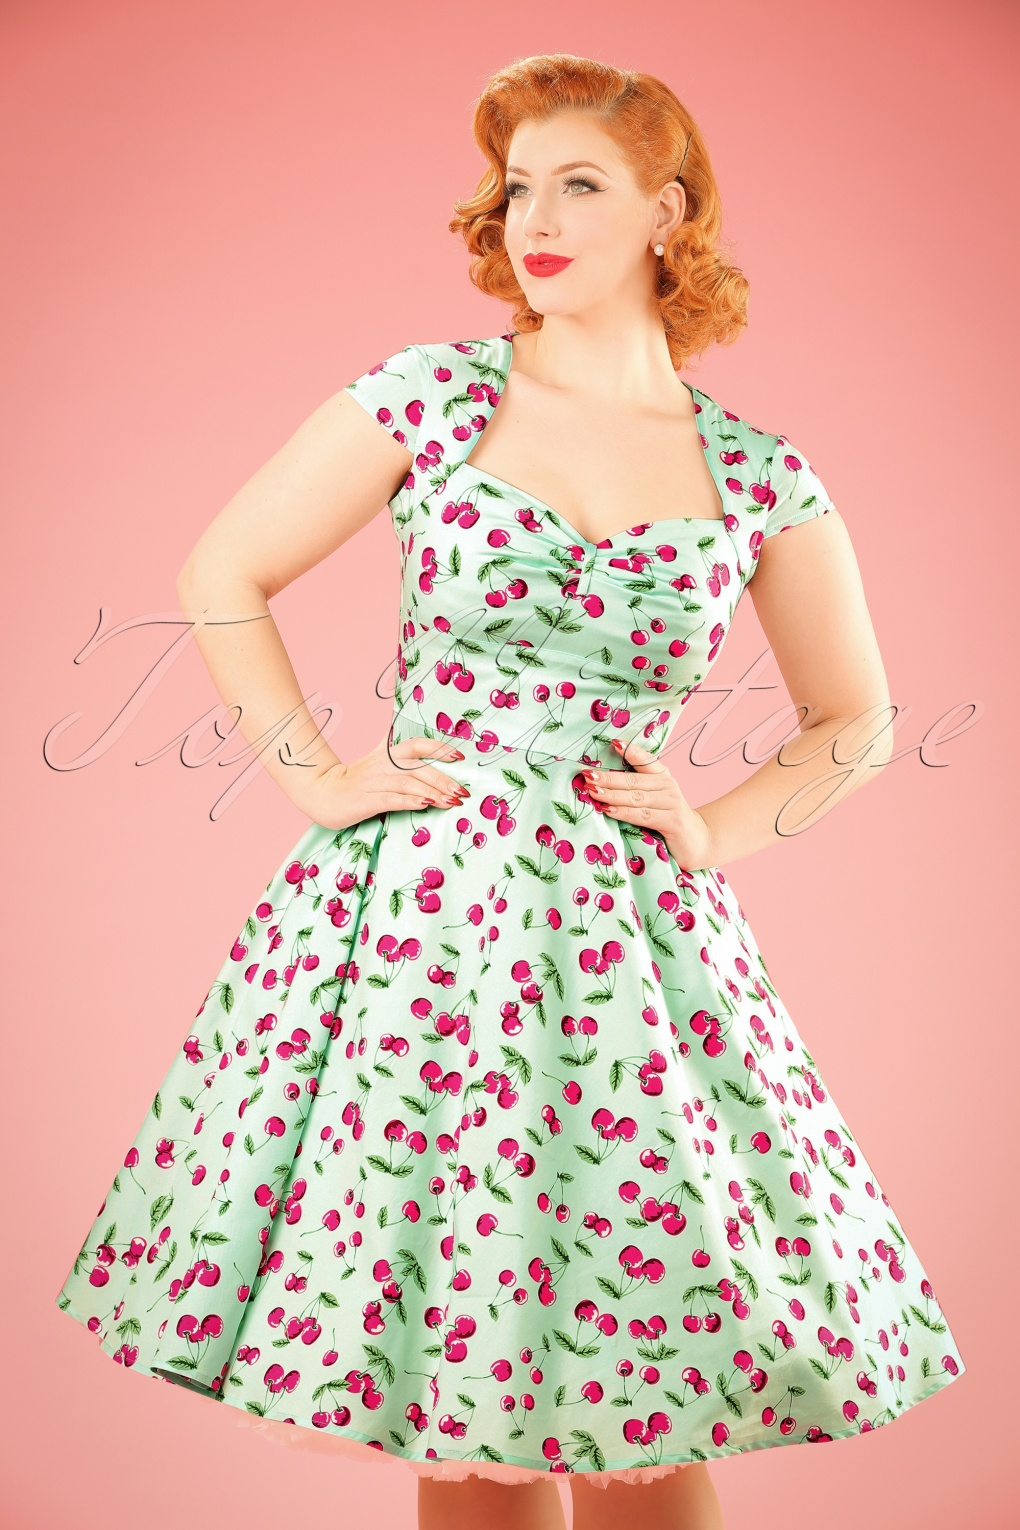 1940s Pinup Dresses for Sale 50s April Cherry Swing Dress in Mint Green £34.73 AT vintagedancer.com